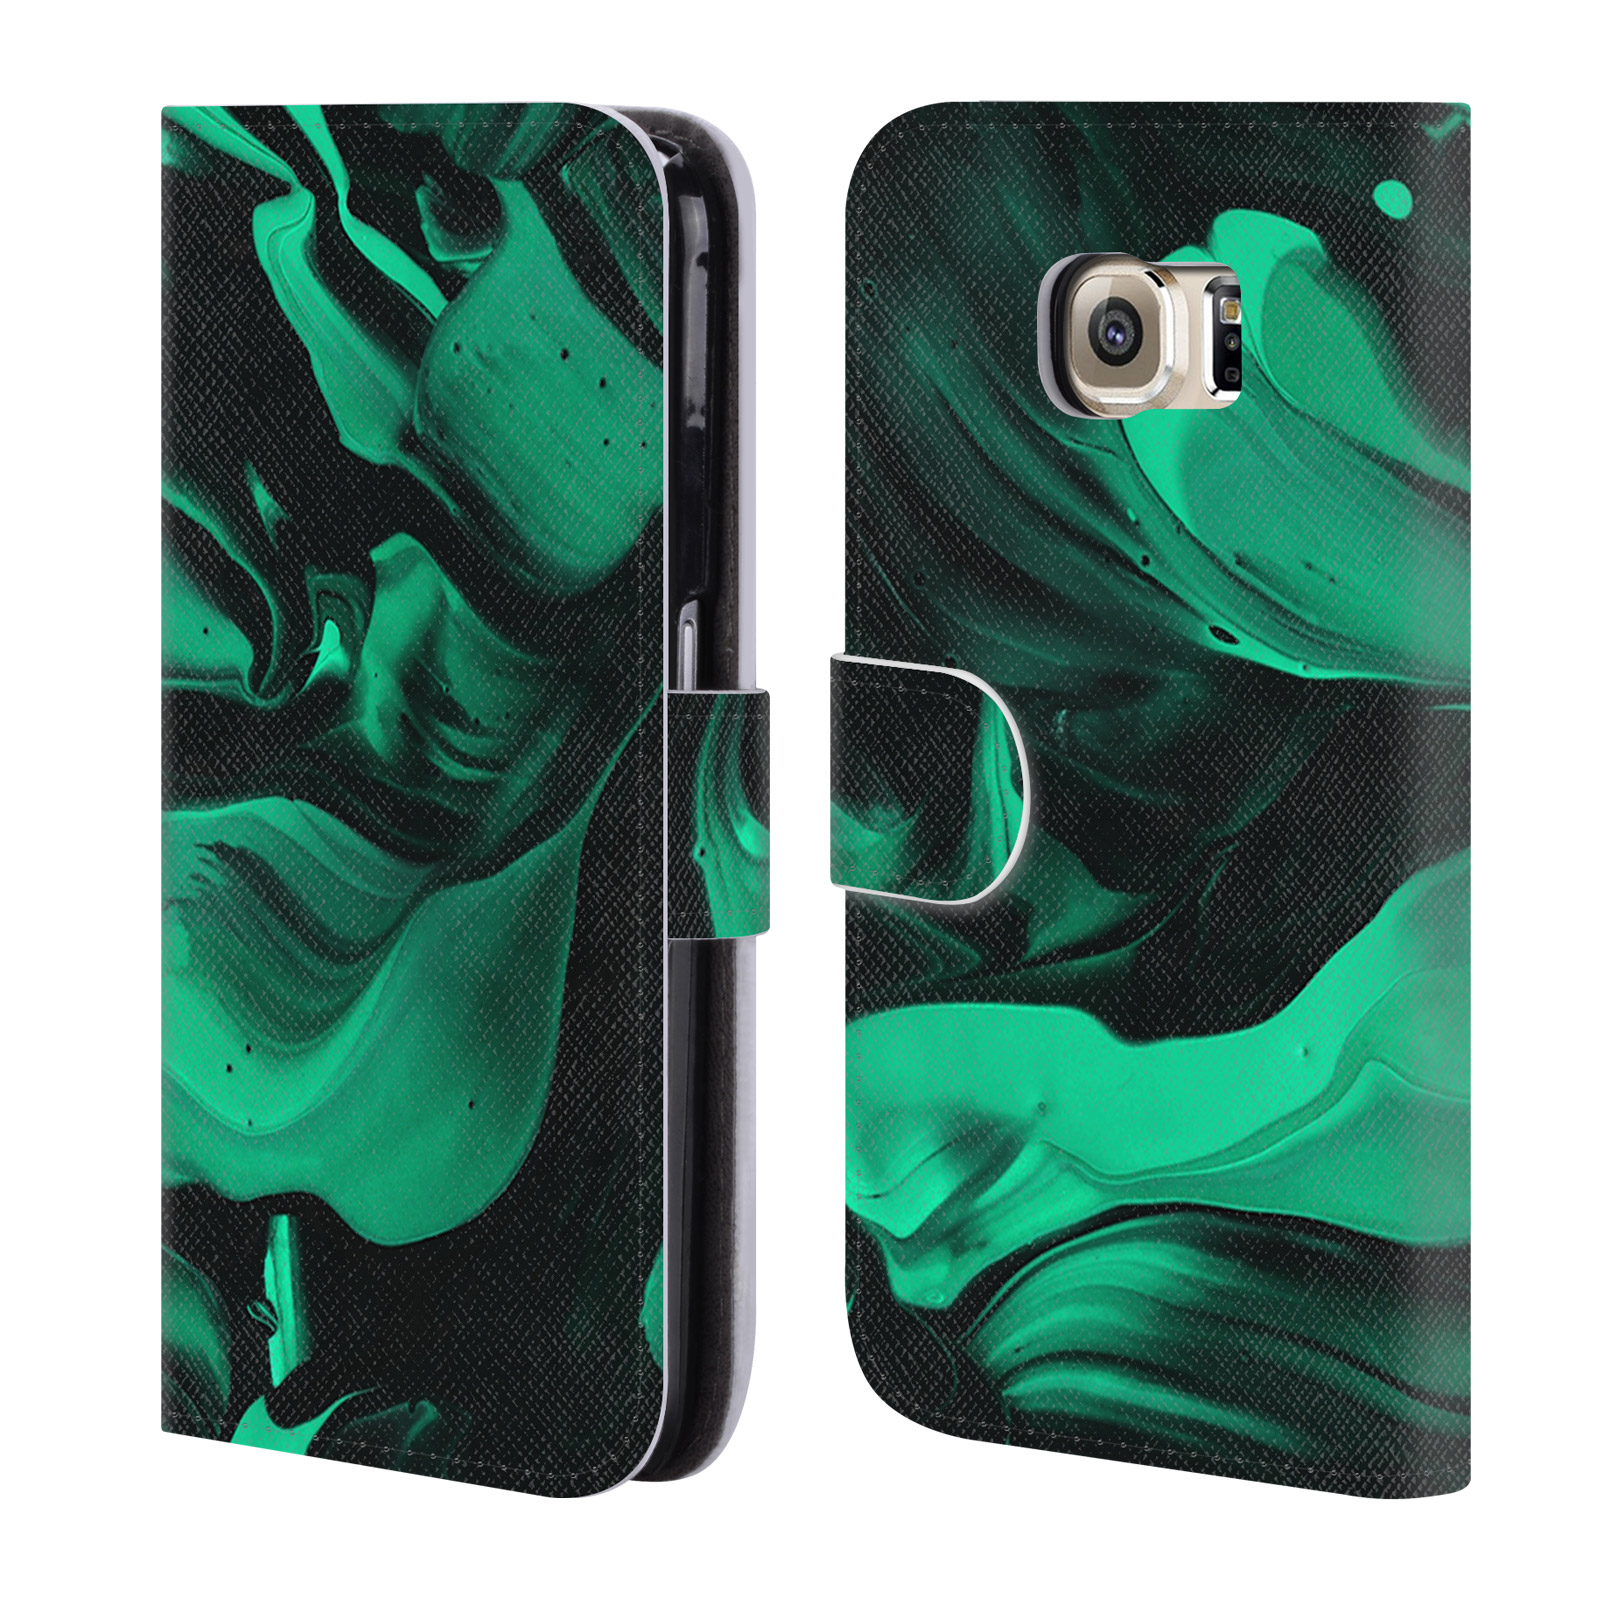 OFFICIAL-DJUNO-TOMSNI-ABSTRACT-2-LEATHER-BOOK-WALLET-CASE-FOR-SAMSUNG-PHONES-1